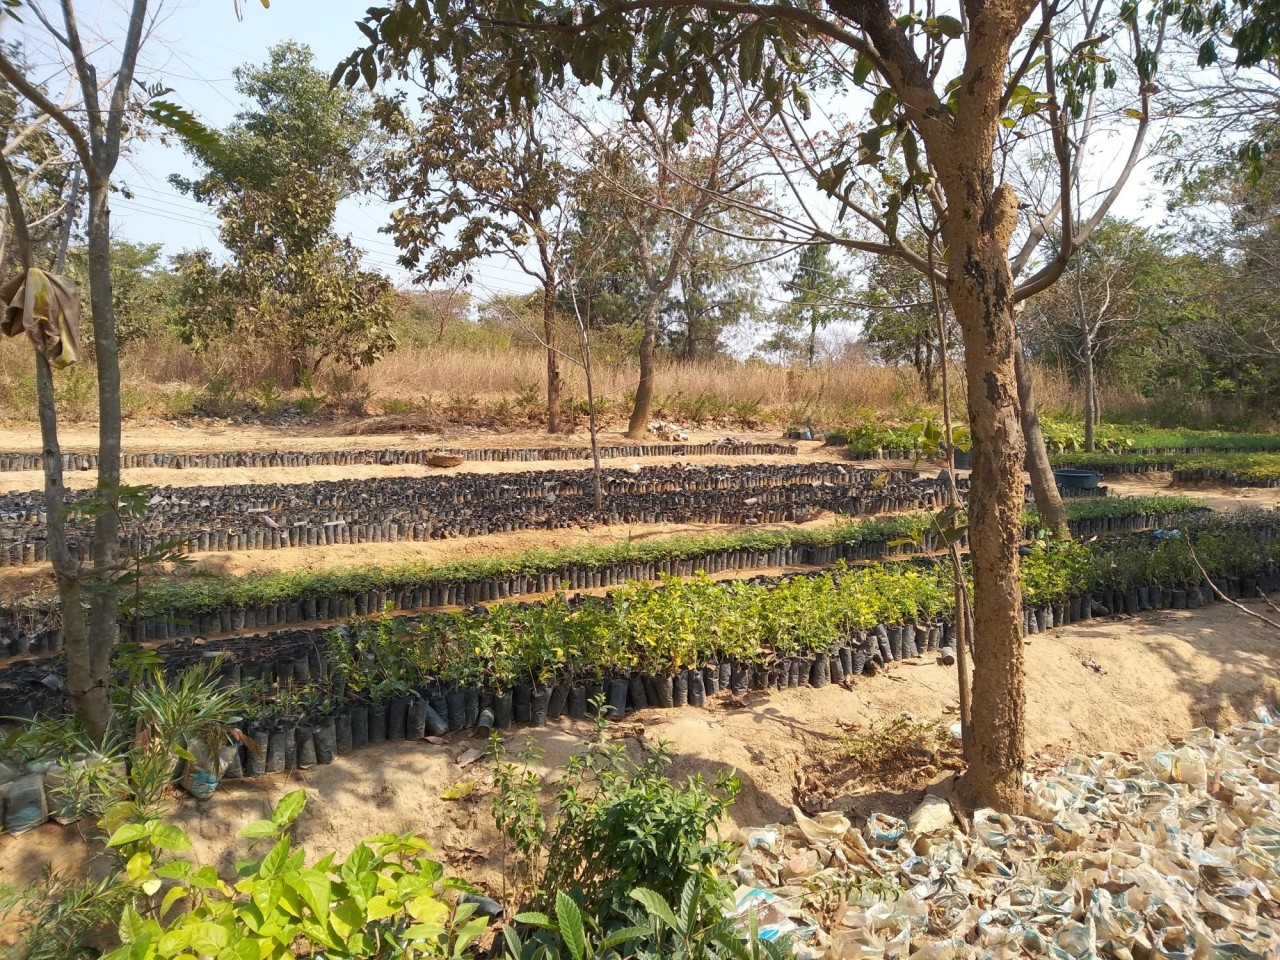 Sustainable project in South-WesternTanzania